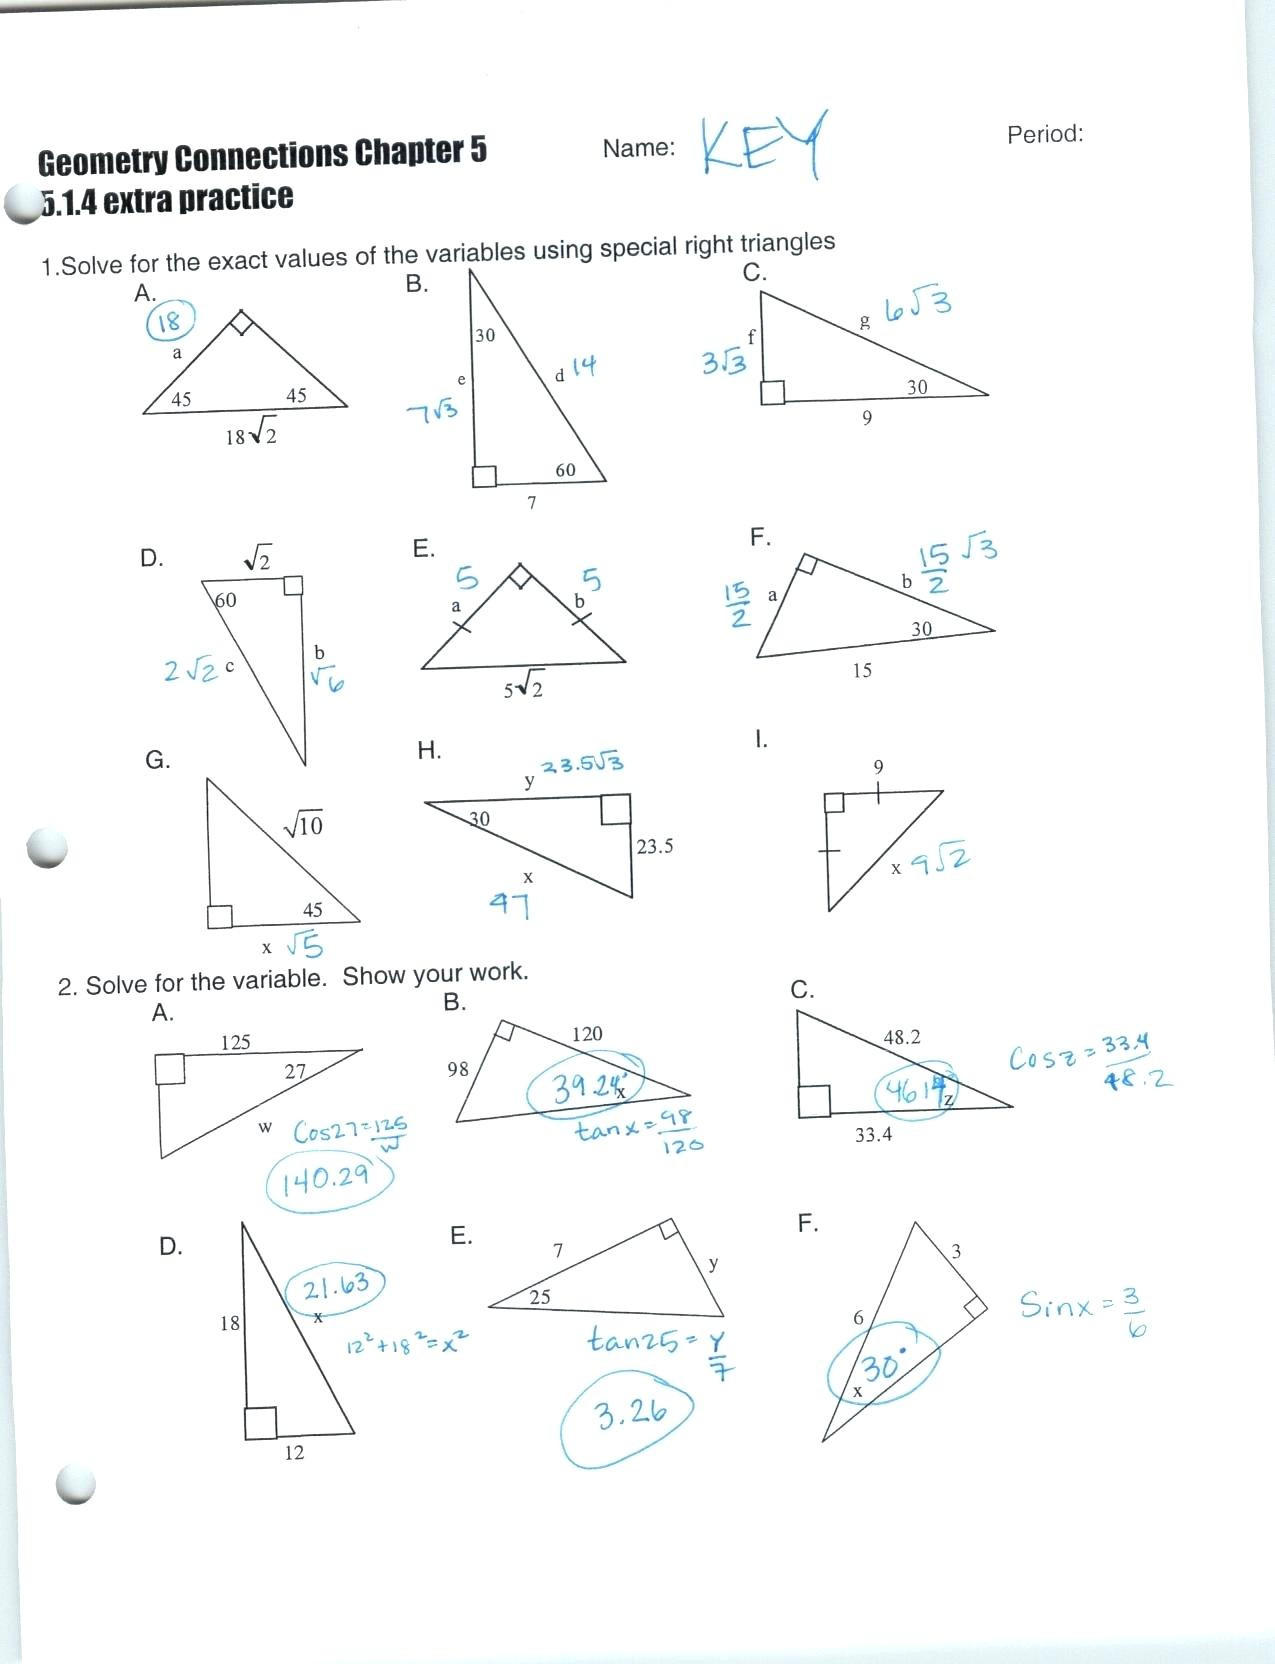 Right Triangle Trig Worksheet Answers Inverse Trig Functions Worksheet with Answers Nidecmege